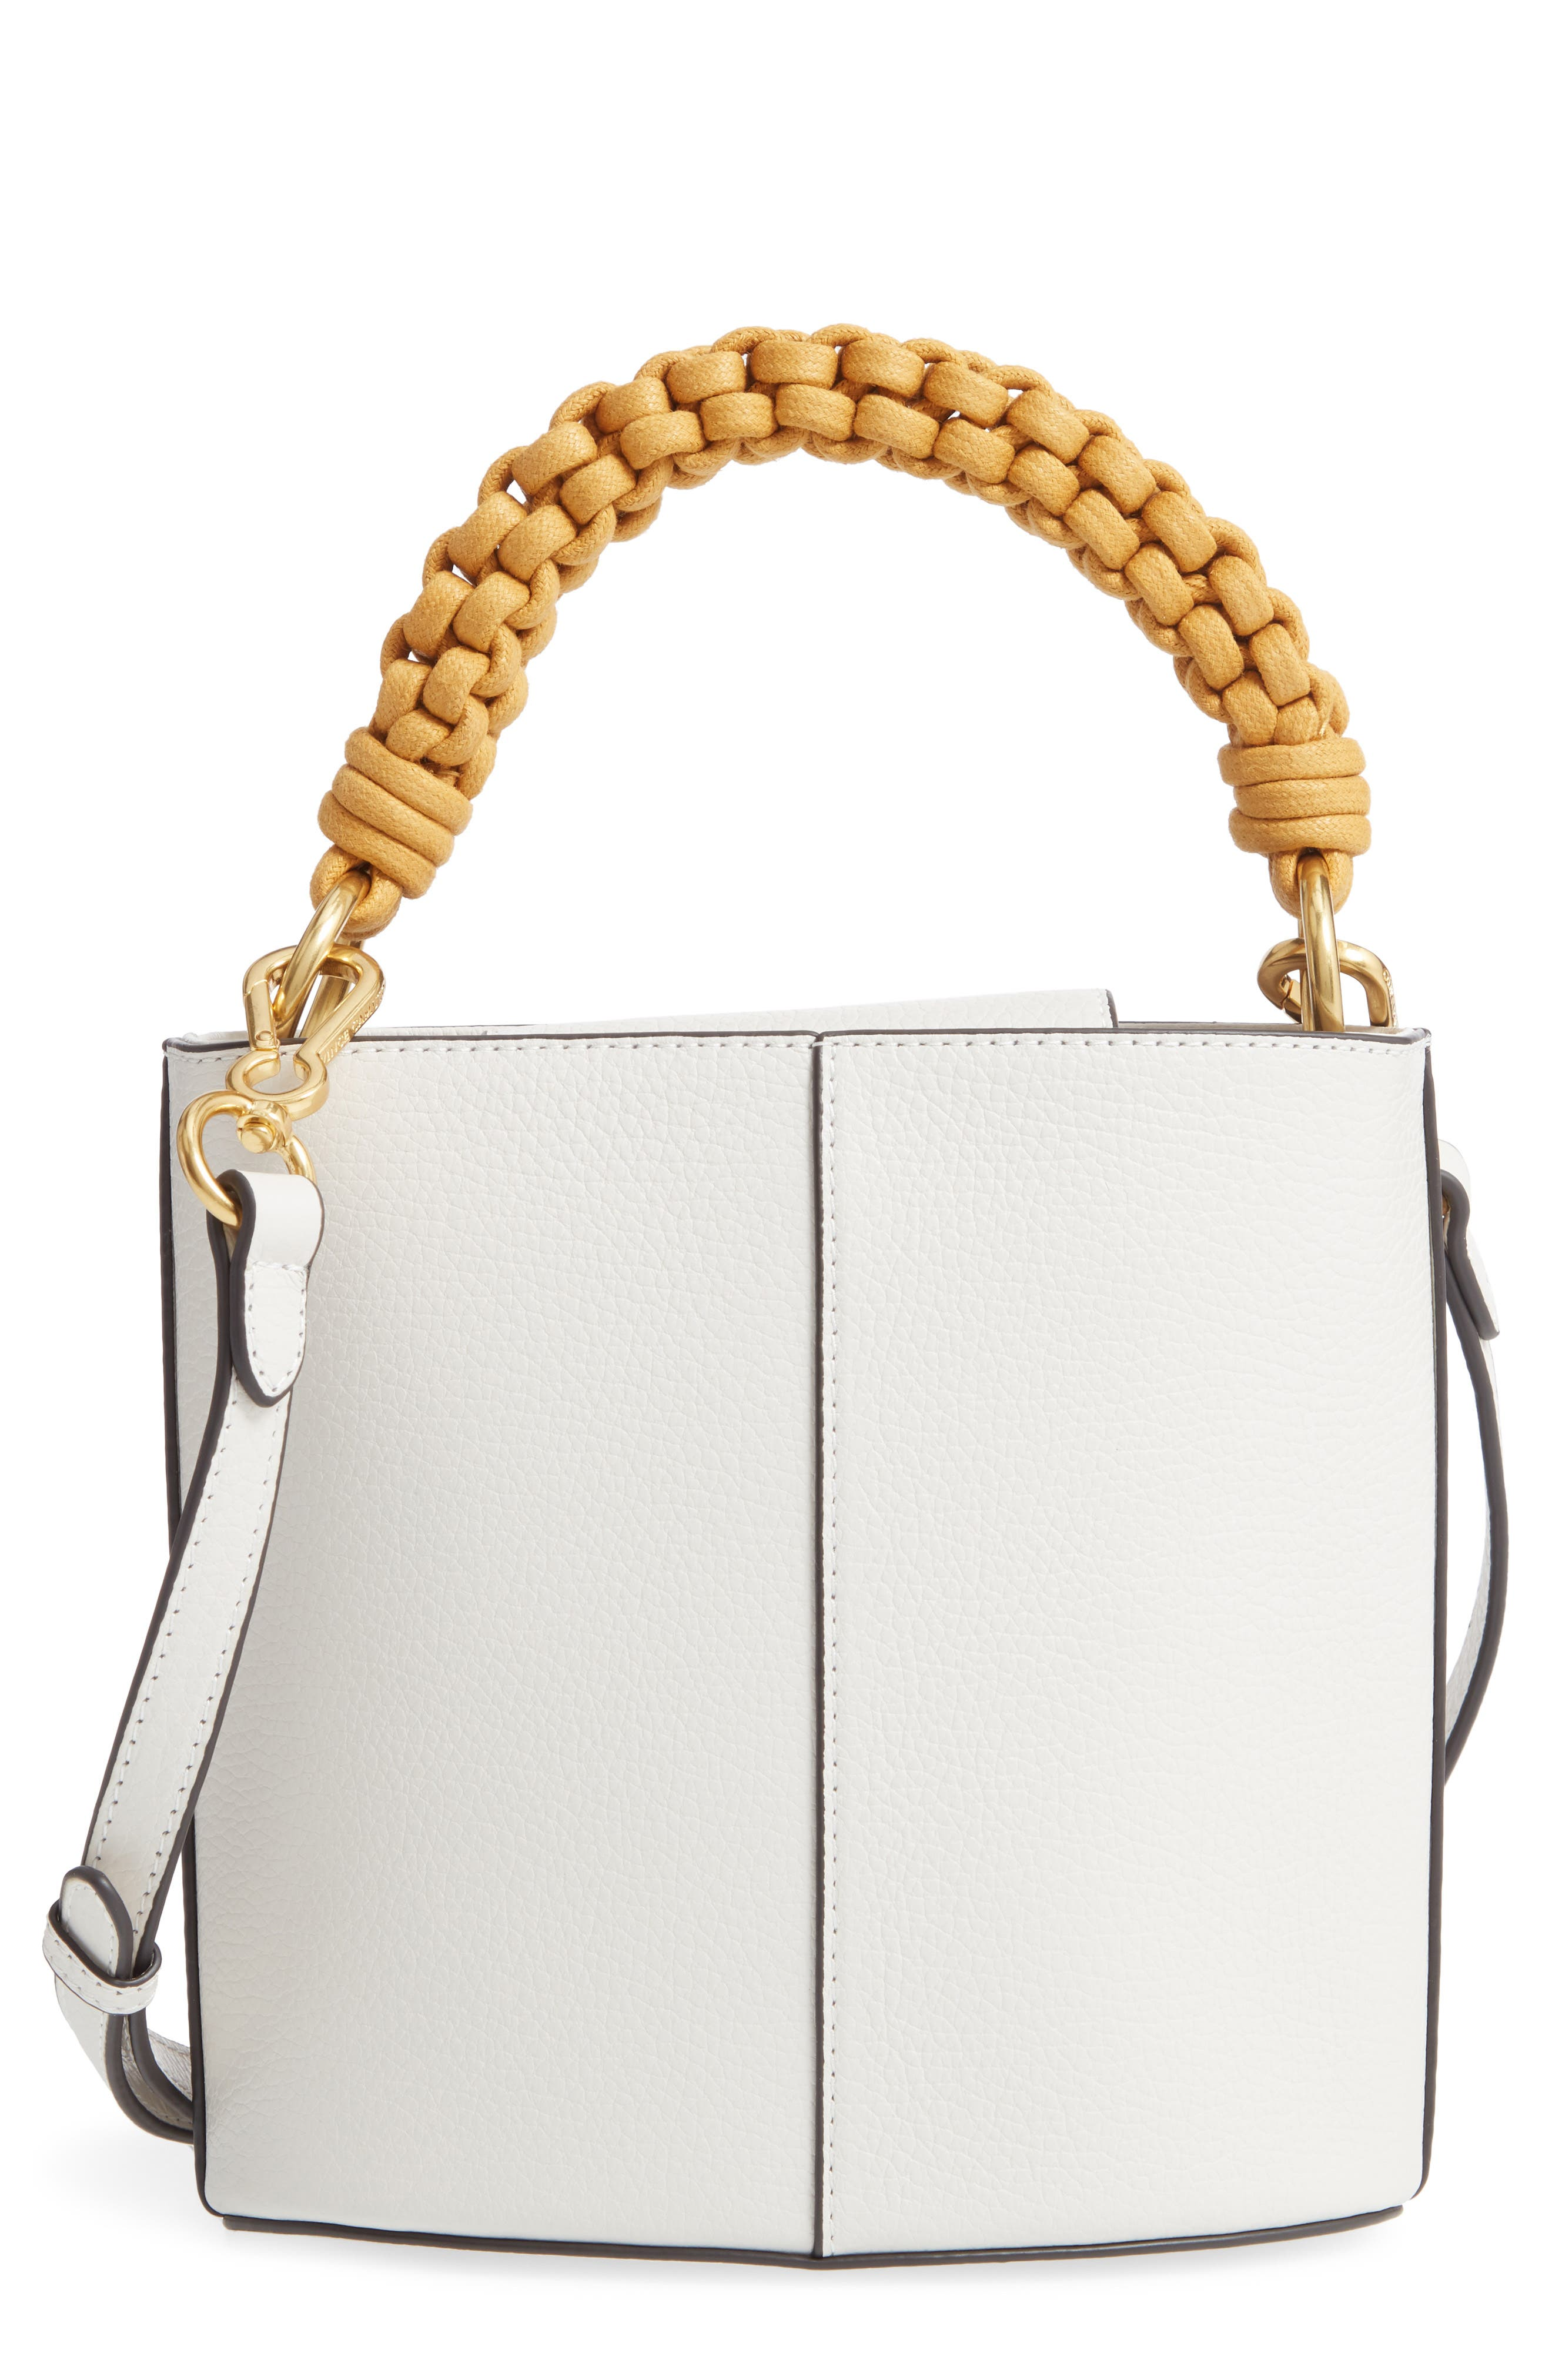 VINCE CAMUTO, Zane Leather Bucket Bag, Main thumbnail 1, color, SNOW WHITE